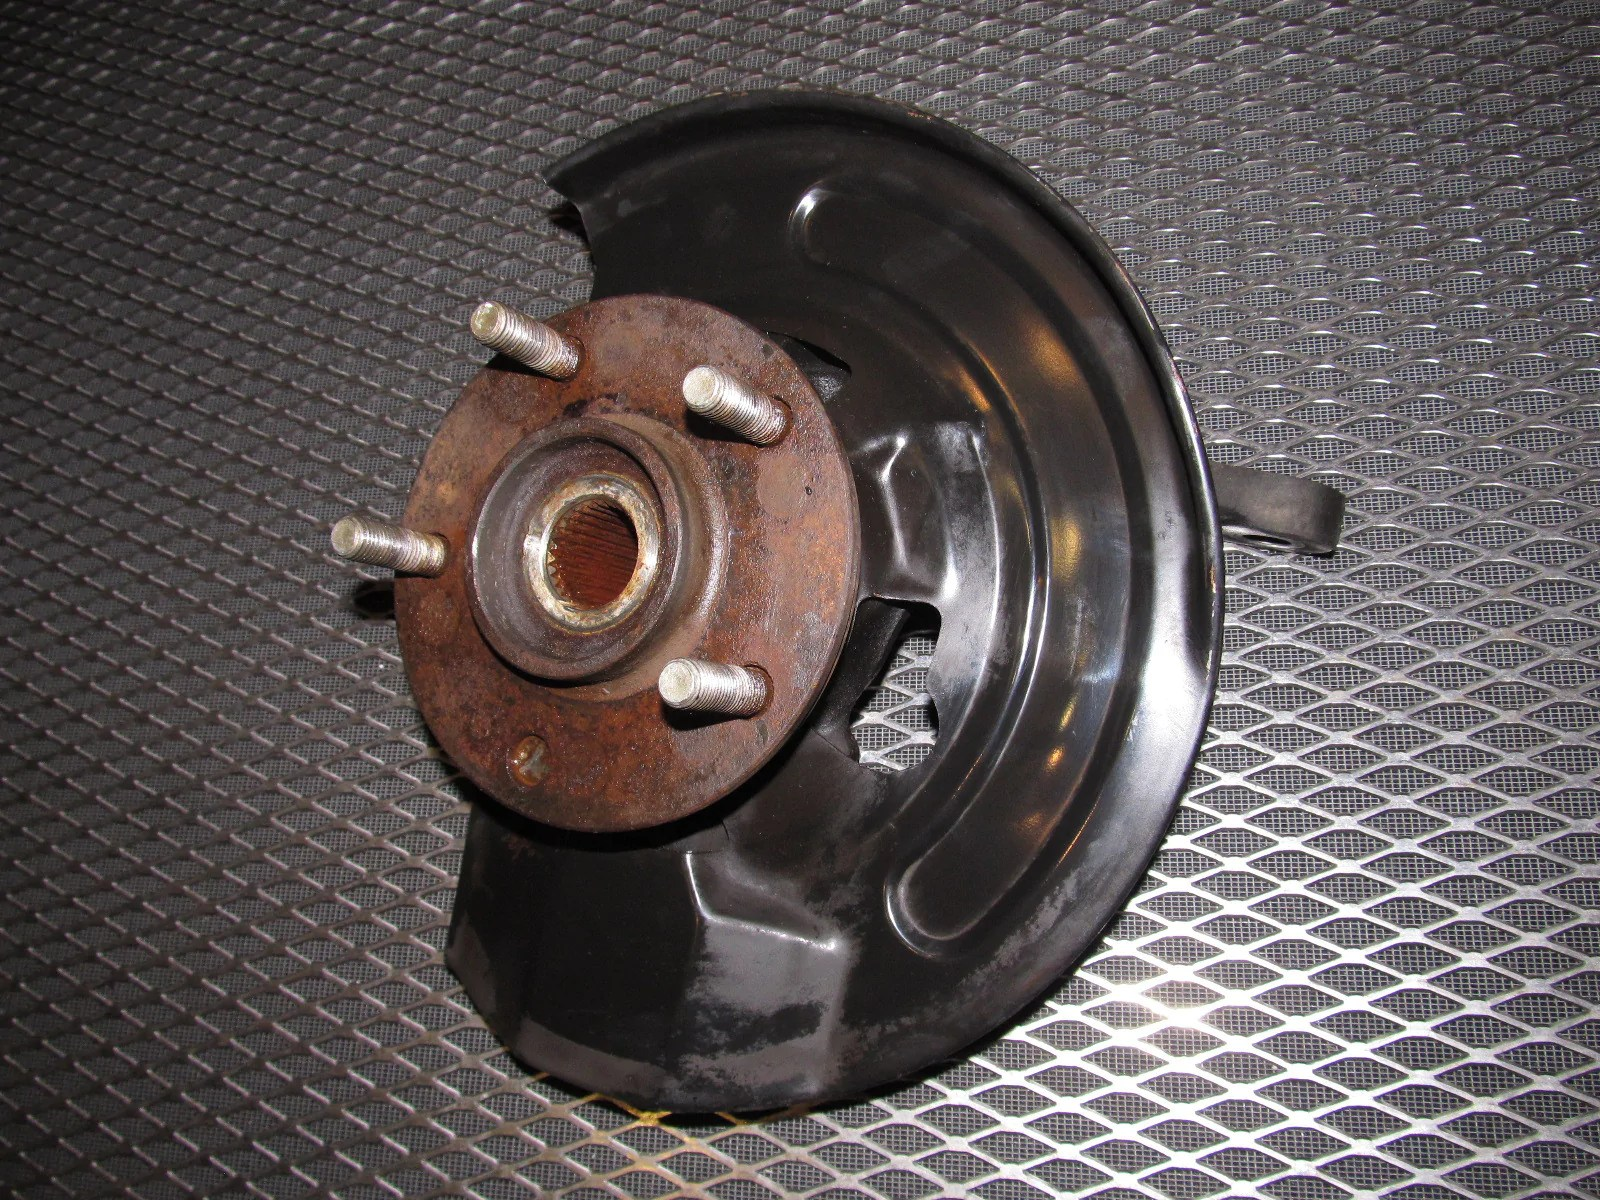 94 95 96 97 mitsubishi 3000gt oem spindle knuckle assembly front  [ 1600 x 1200 Pixel ]